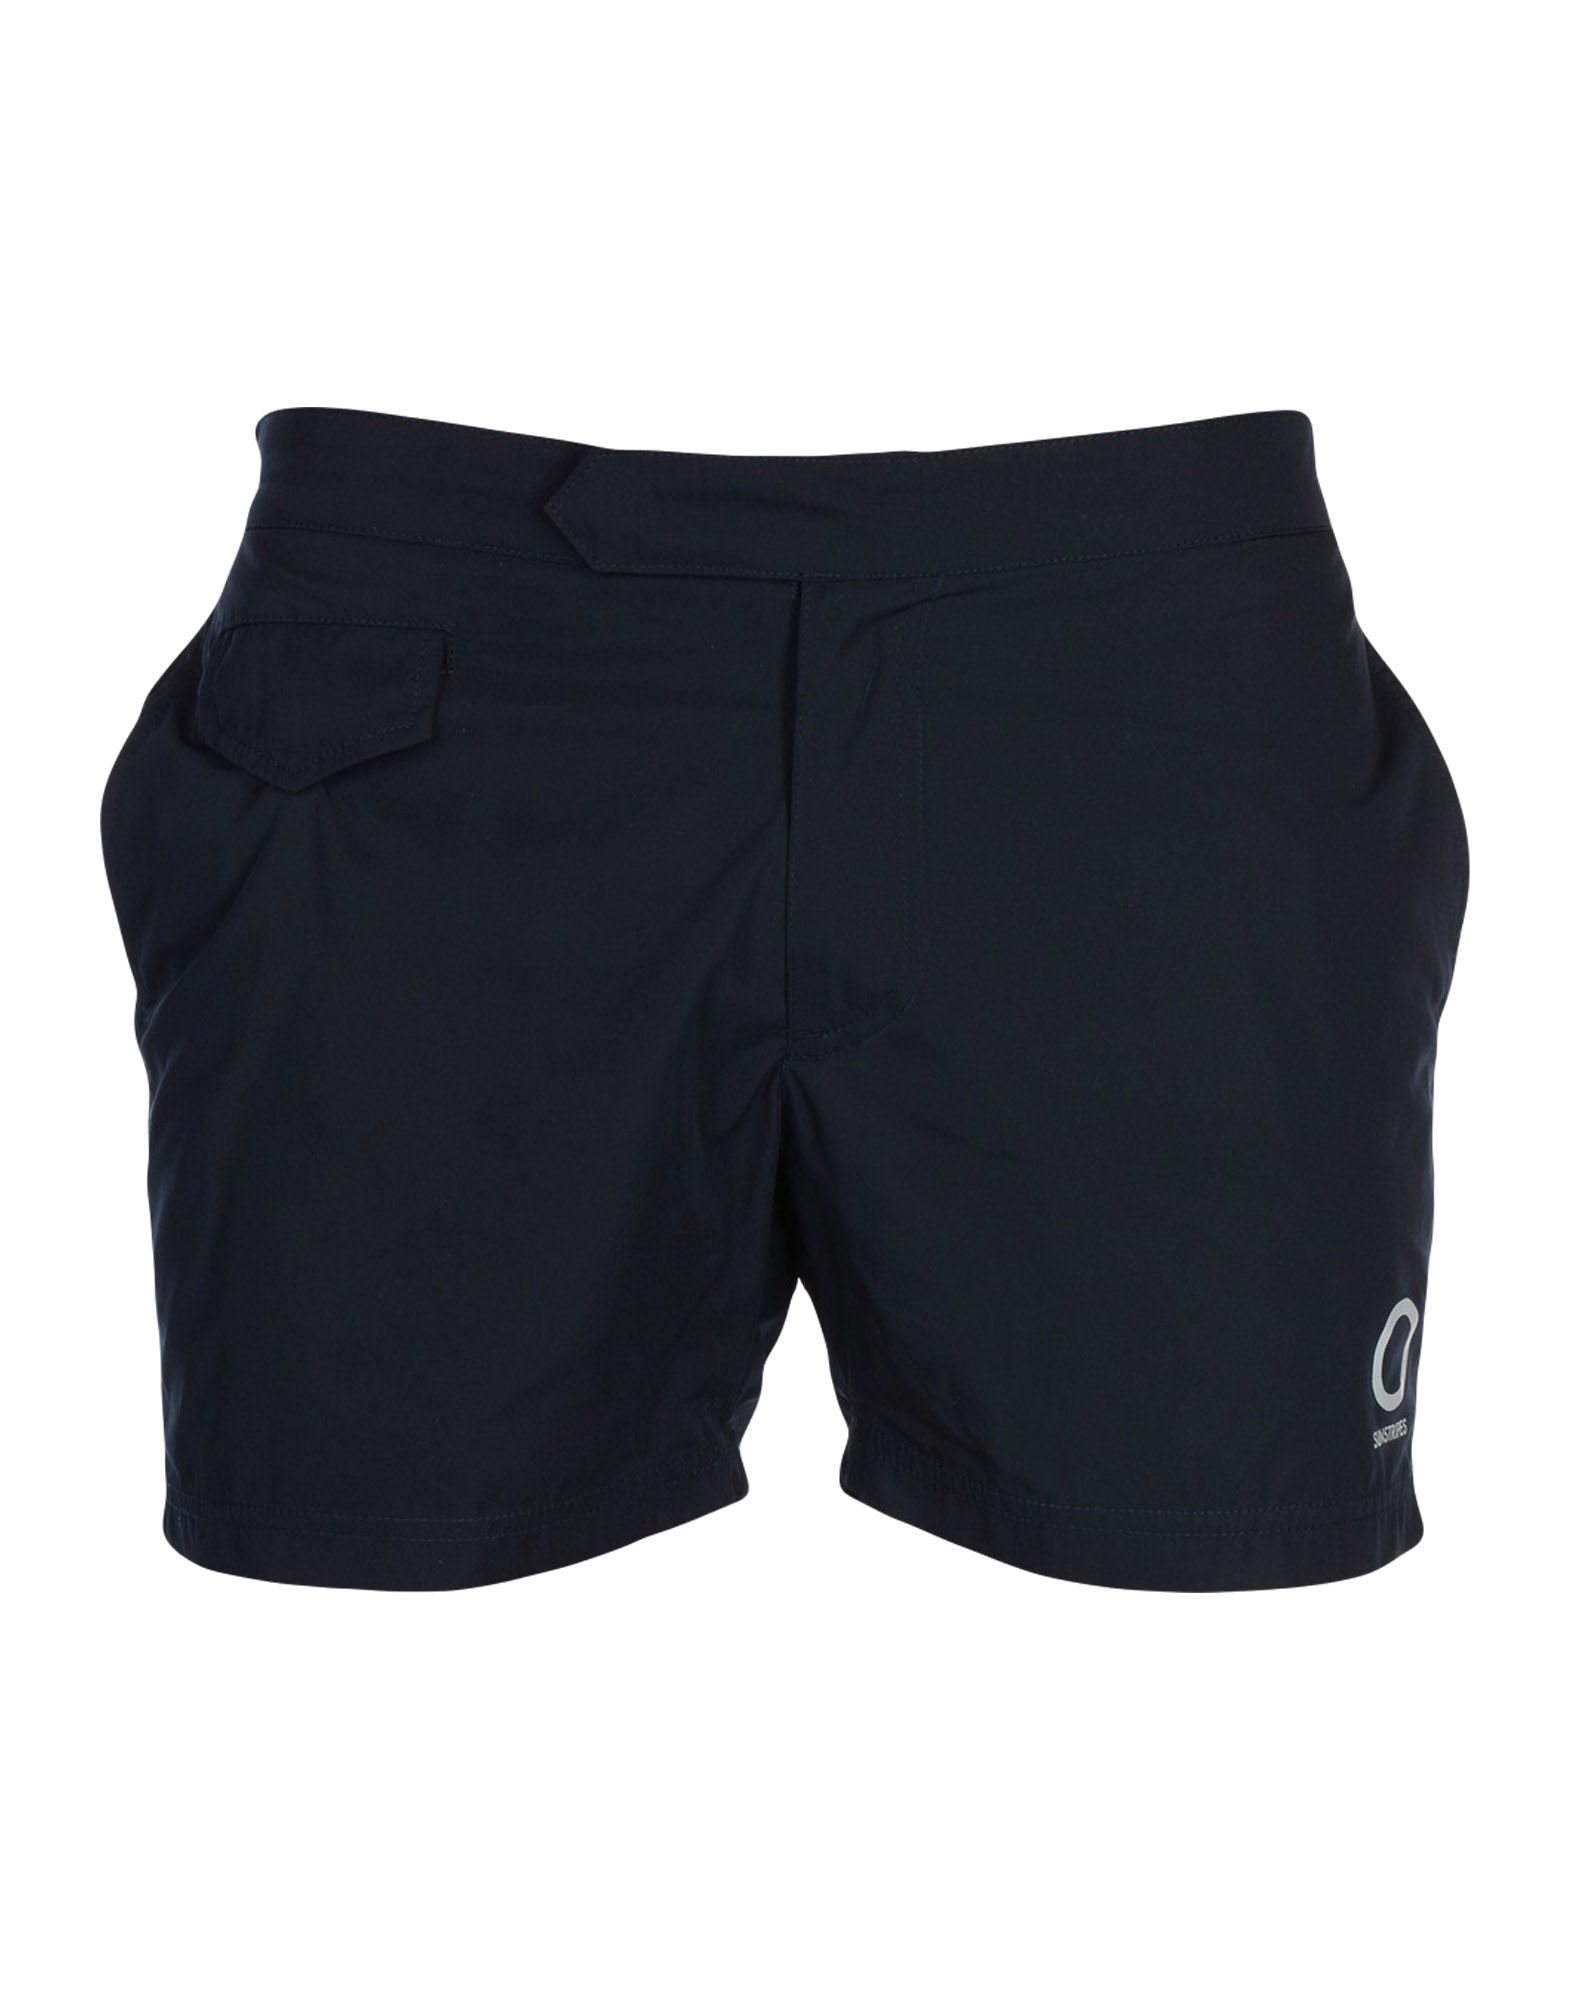 Cheap Price Top Quality SWIMWEAR - Swimming trunks Sunstripes Cheap Wiki Sale Supply With Credit Card Online gP1MGTSqgW